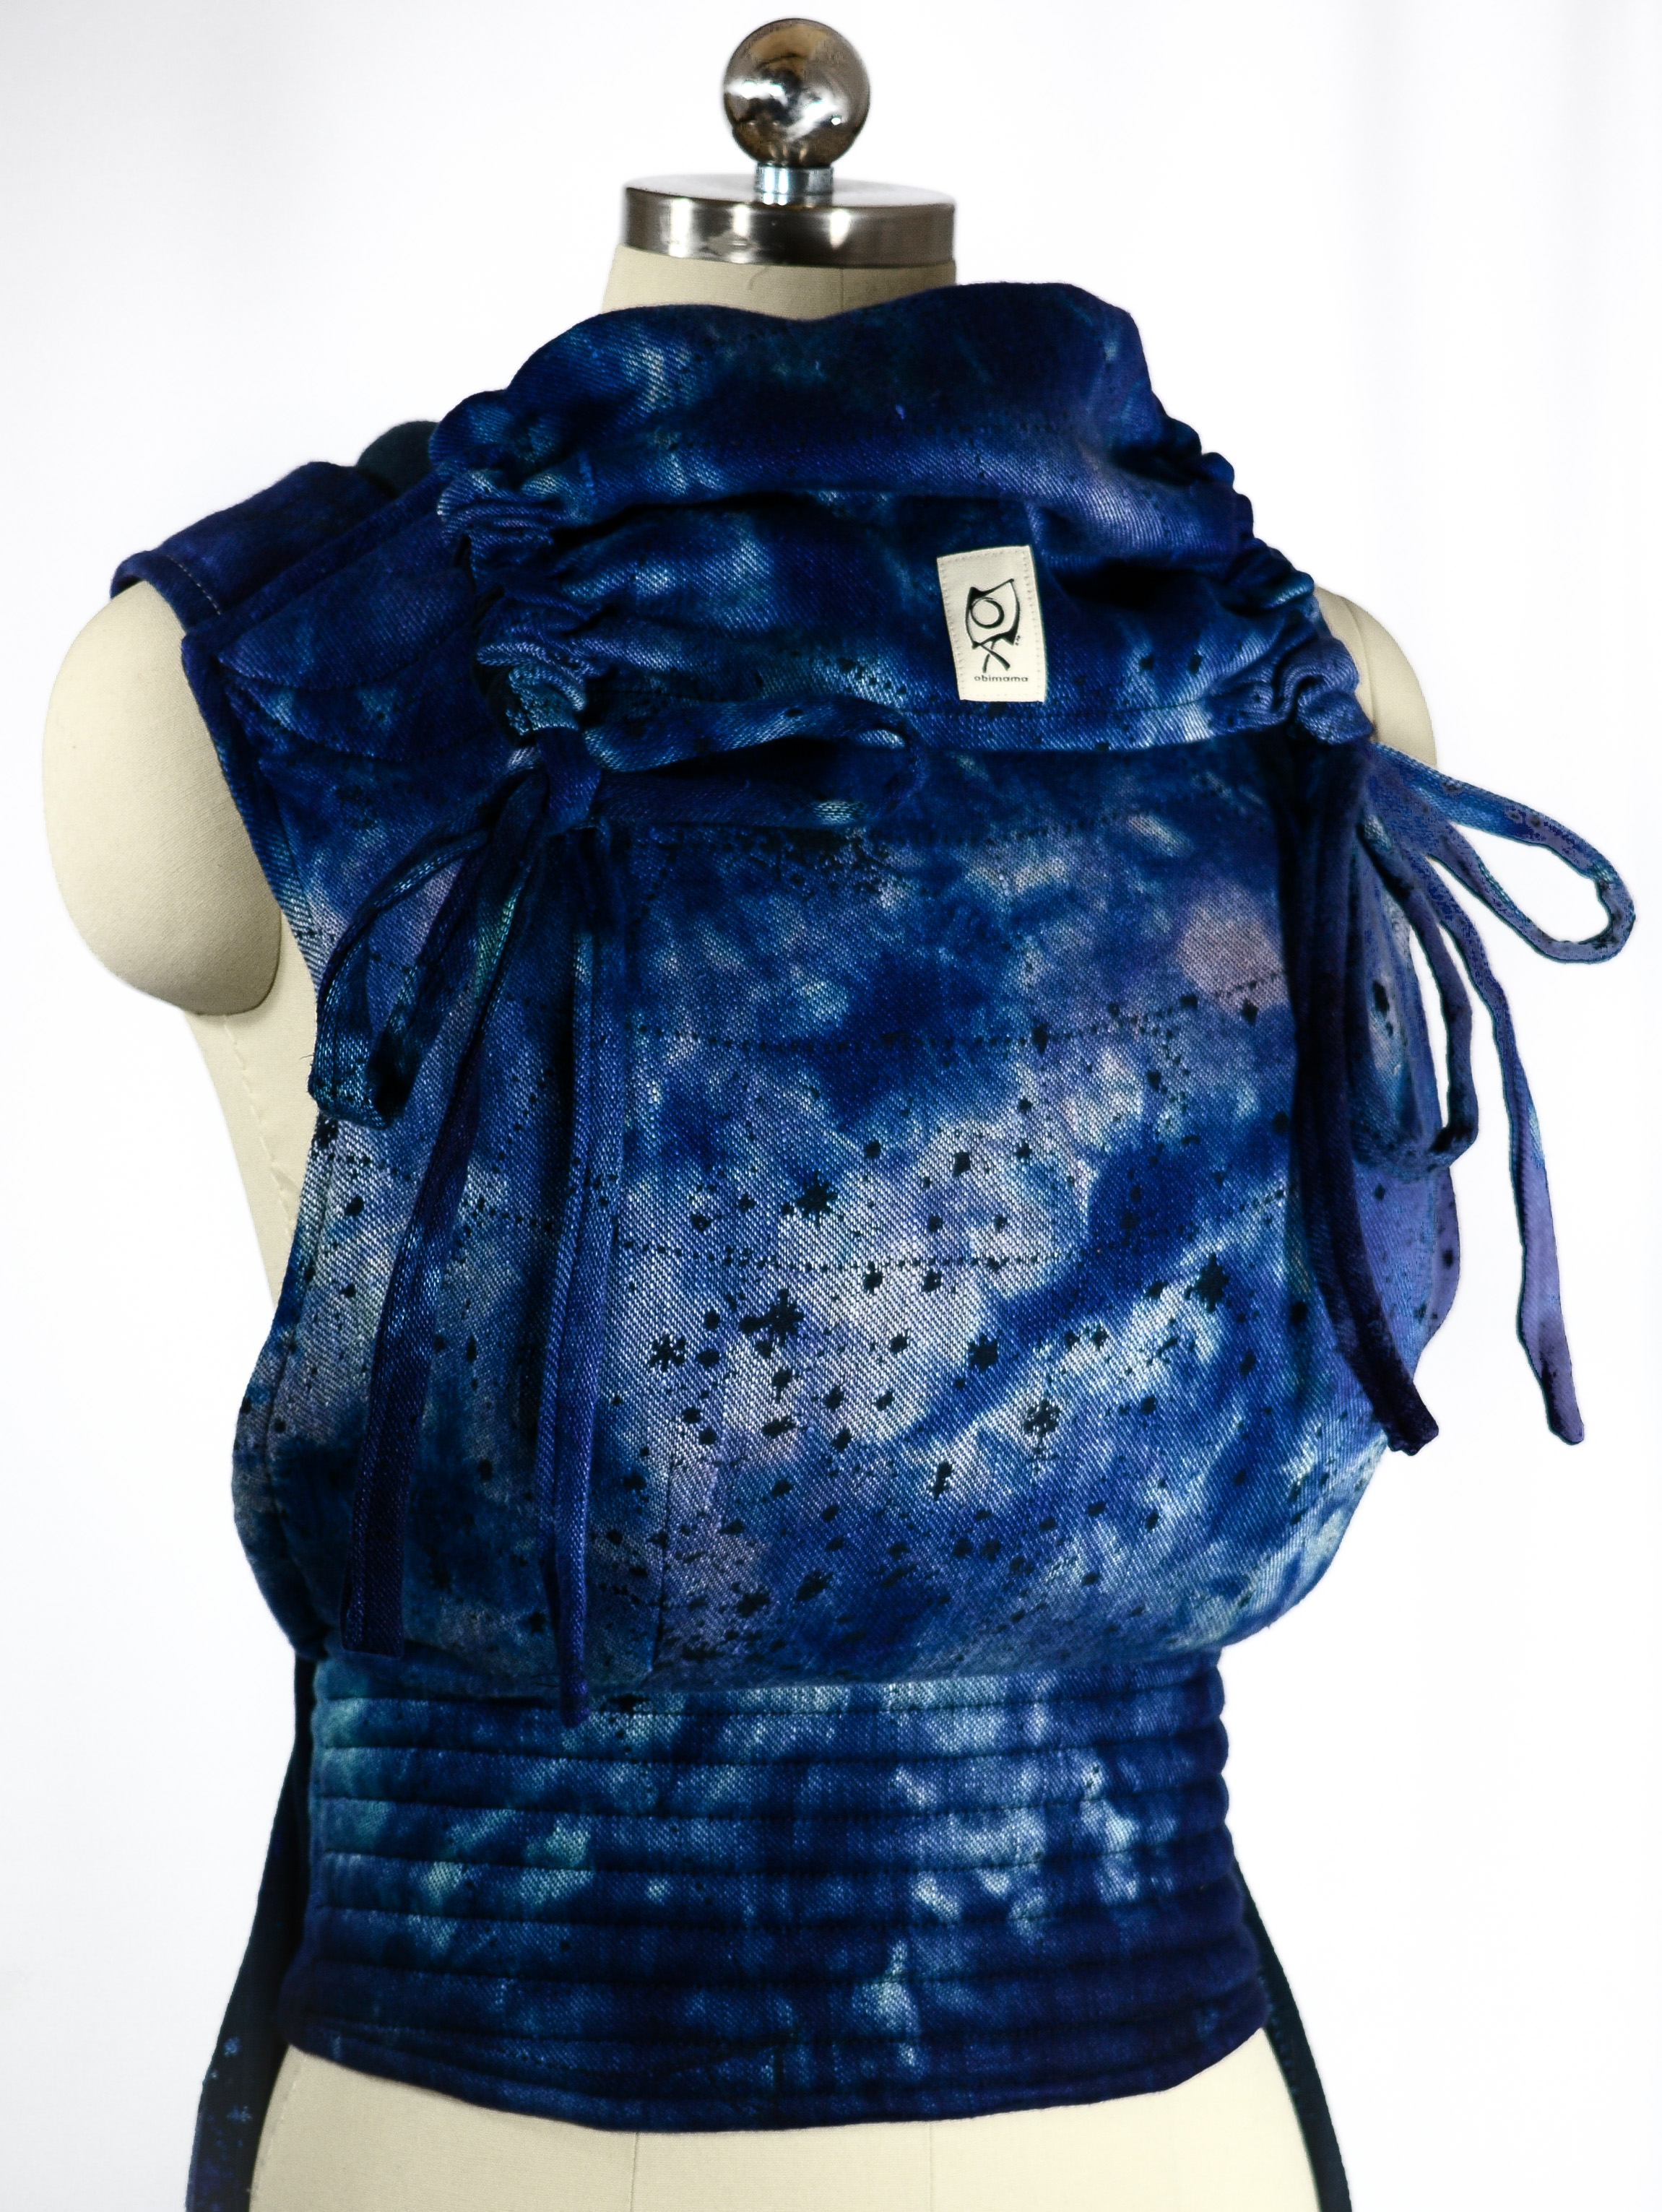 ObiMama Wrap Conversion Mei Tai Firespiral Slings Dyed by Tiny House